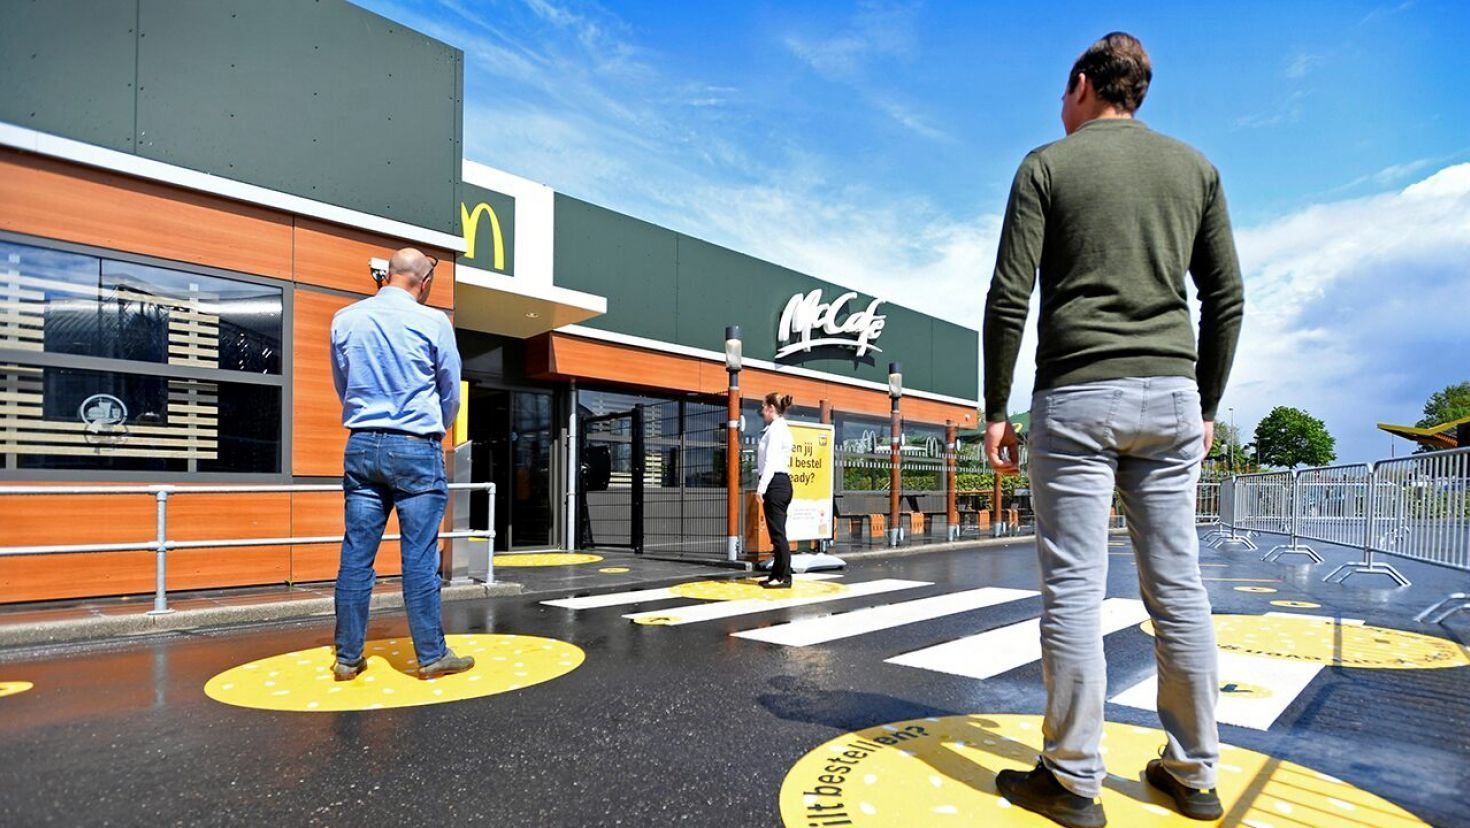 Netherlands Mcdonald S Tests Social Distancing Inspired Redesign For Post Lockdown Business In 2020 Mcdonalds Restaurant Types What Is Like